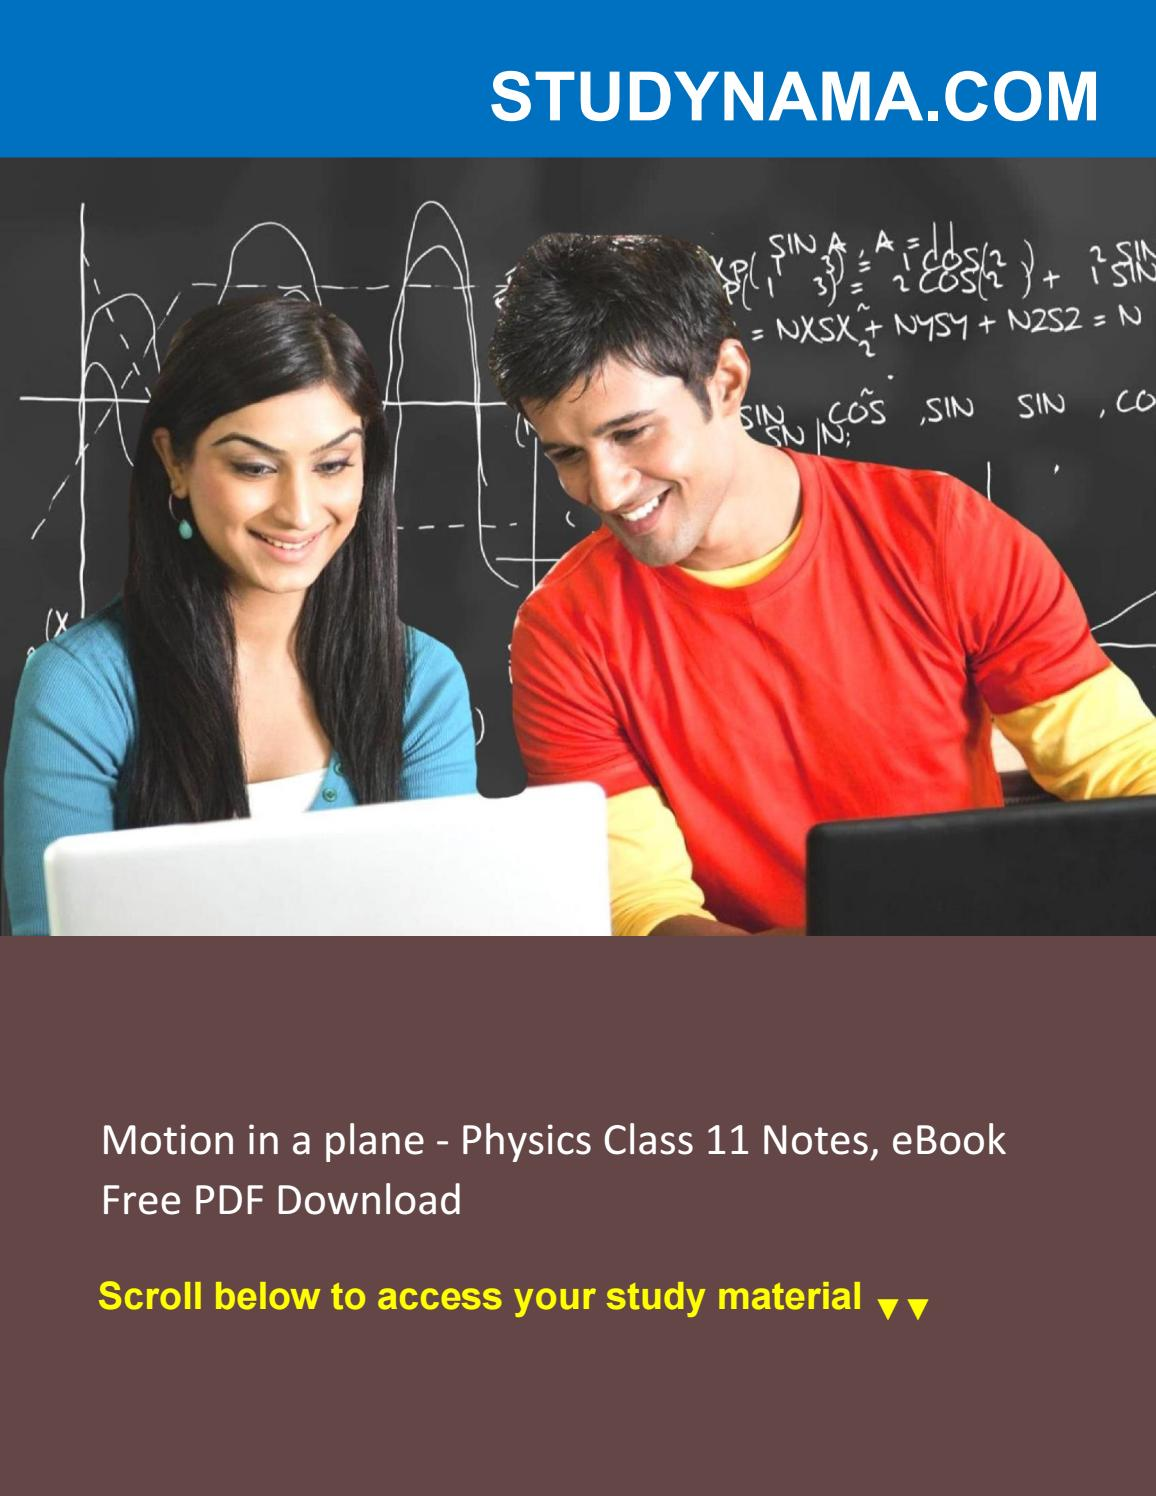 Motion in a plane - Physics Class 11 Notes, eBook Free PDF